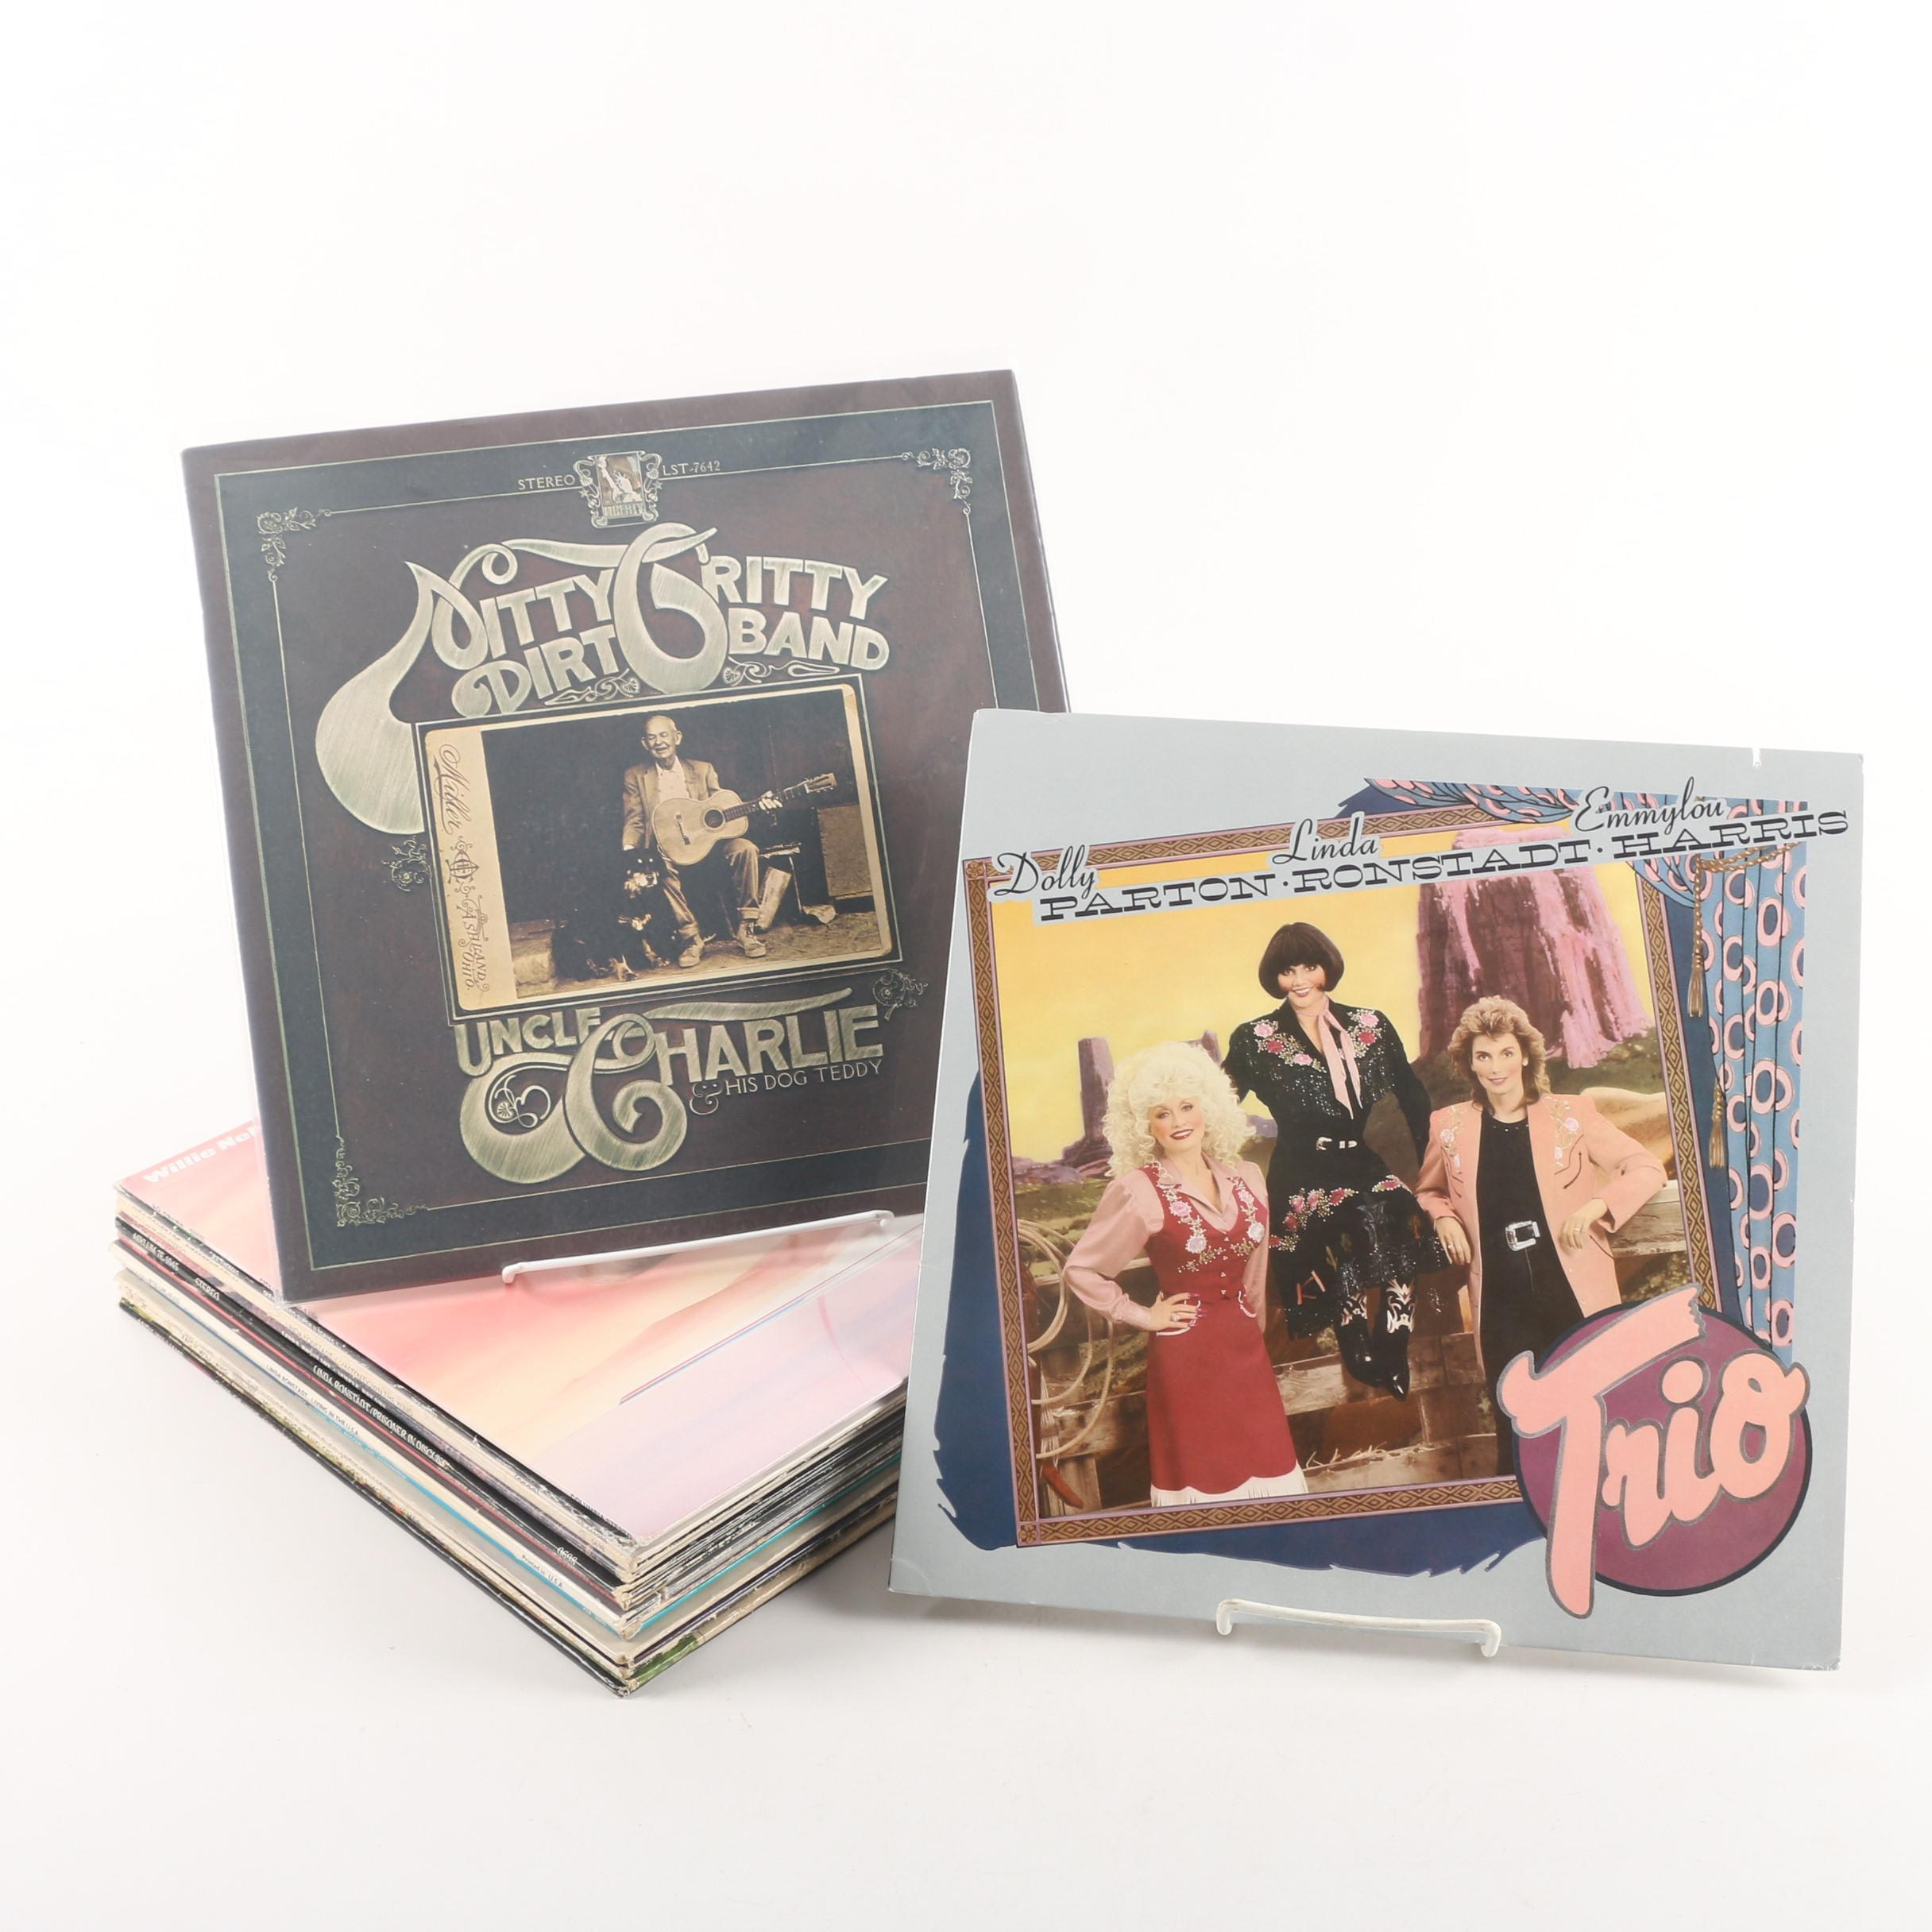 Vintage Country and Easy Listening Records Including Linda Ronstadt